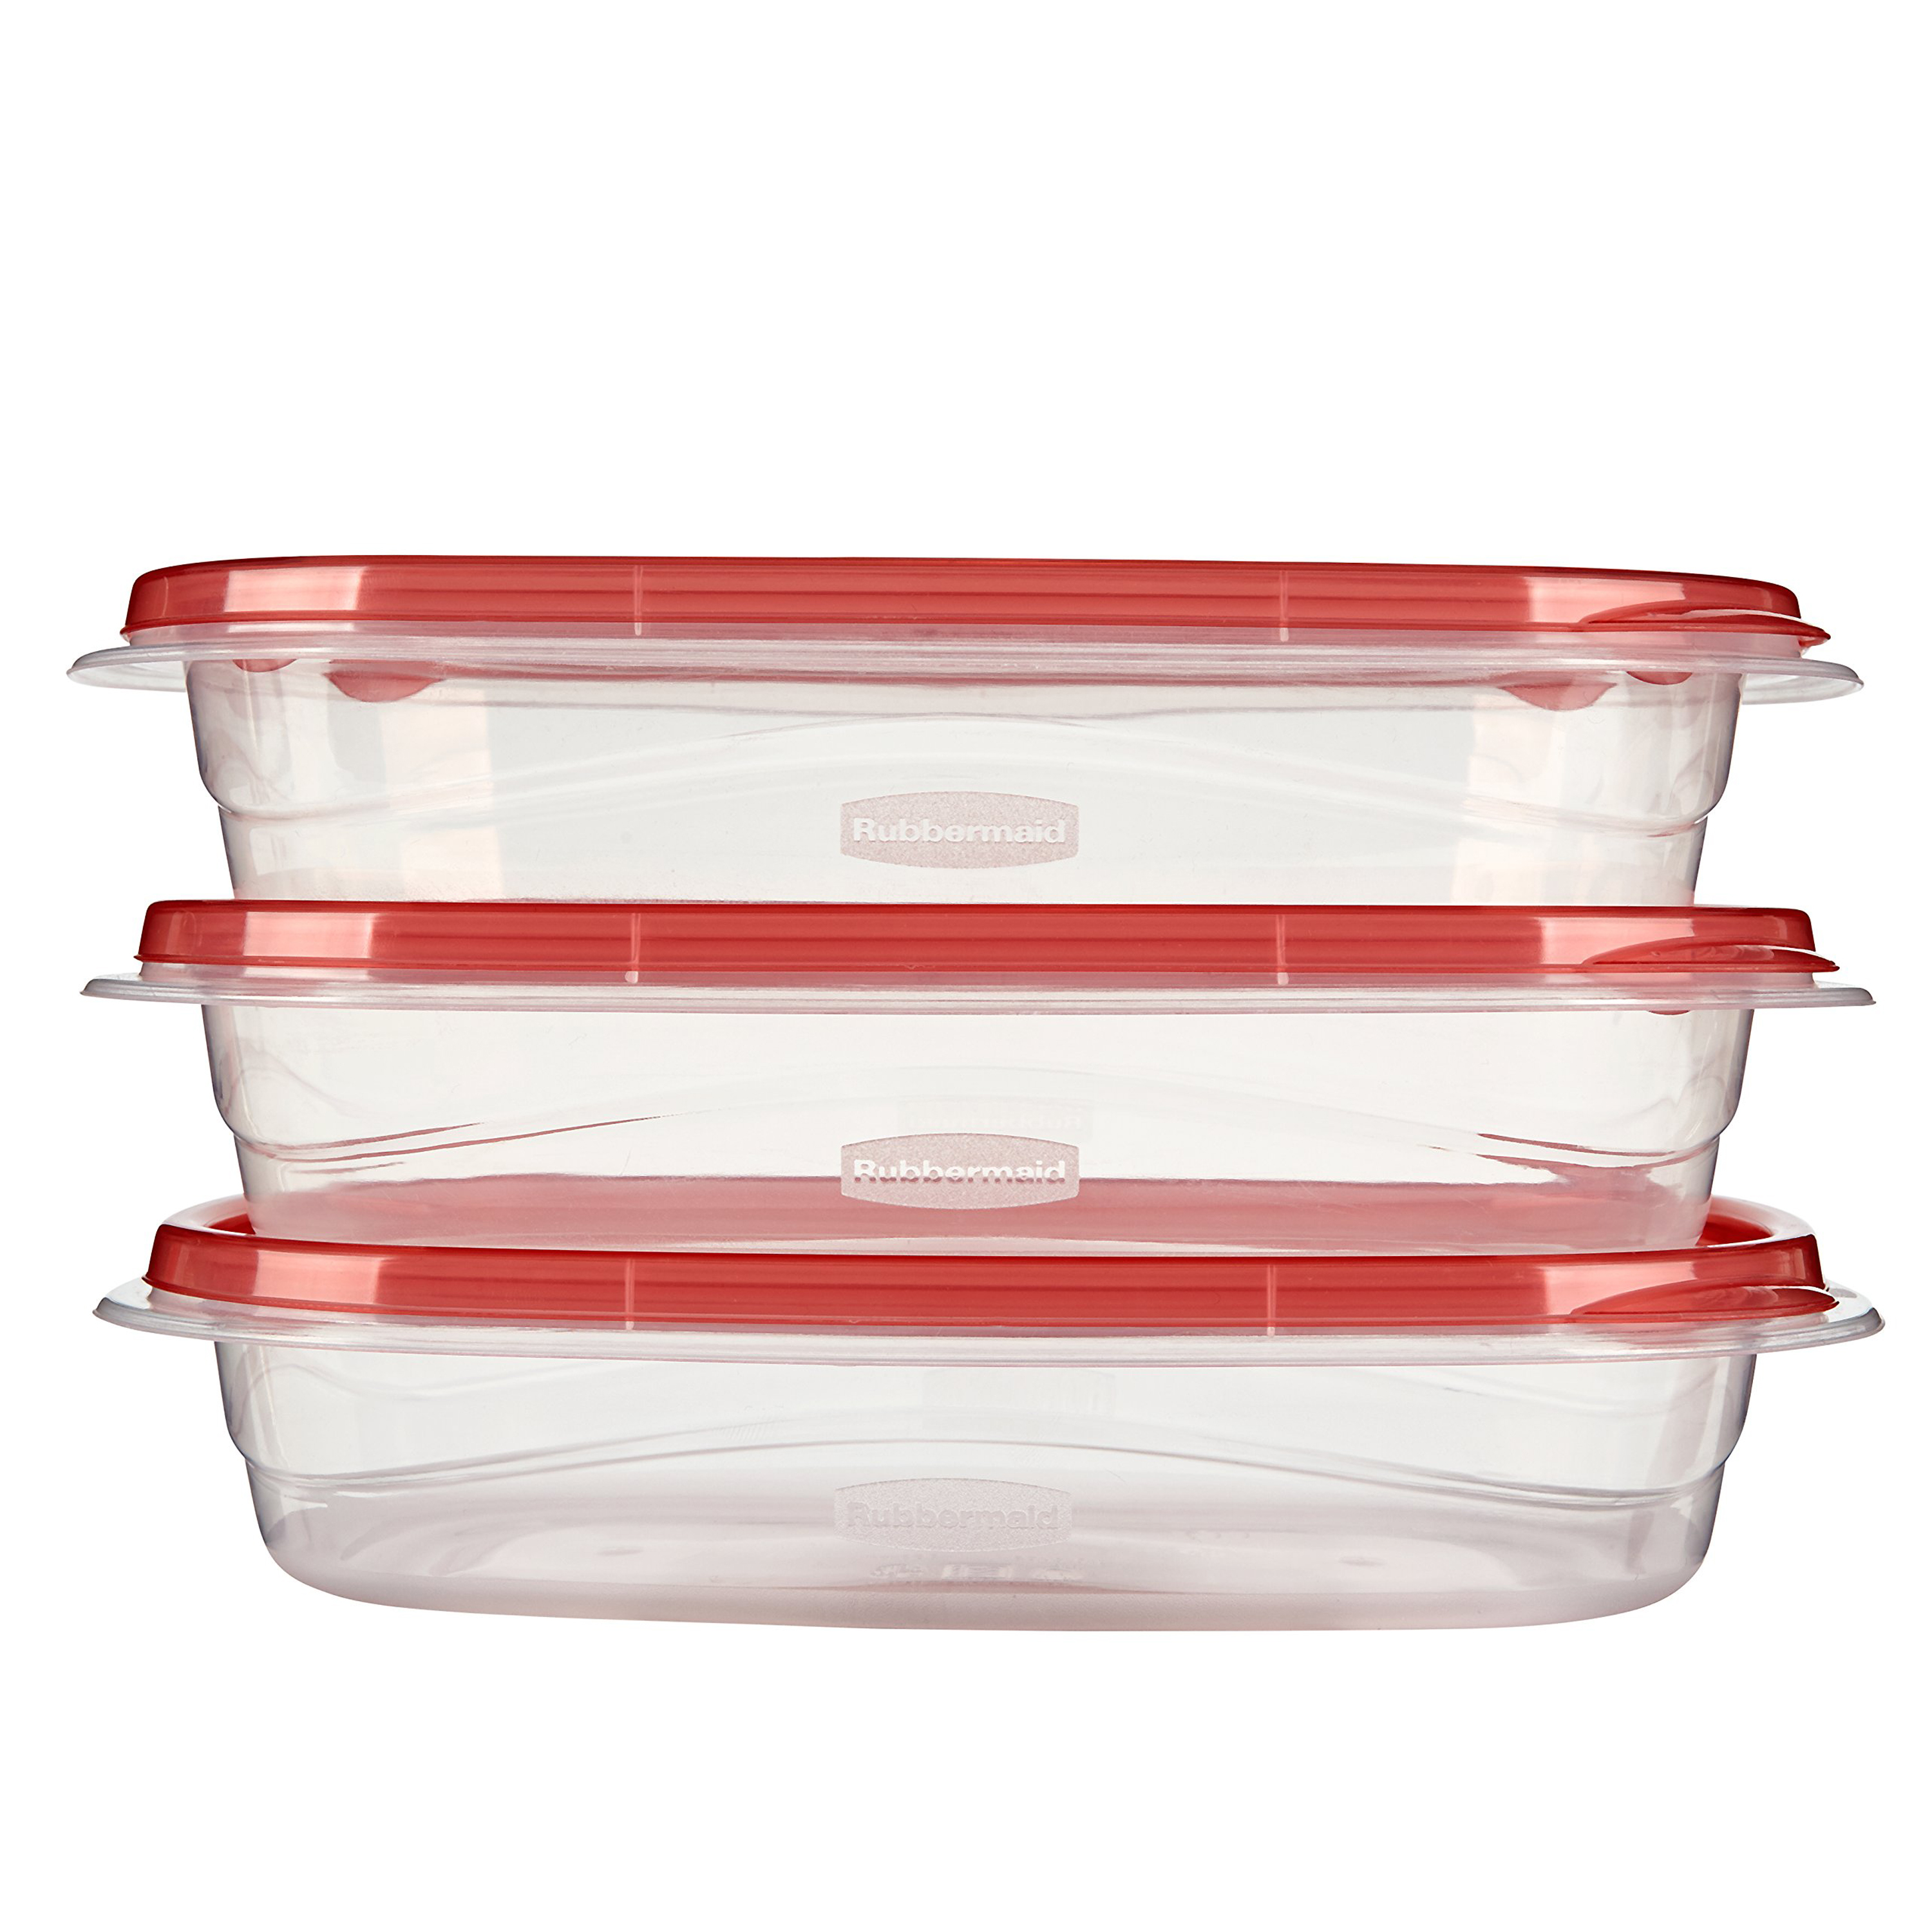 Rubbermaid TakeAlongs Divided Rectangular Food Storage Containers, 3.7 Cup,  3 Pack